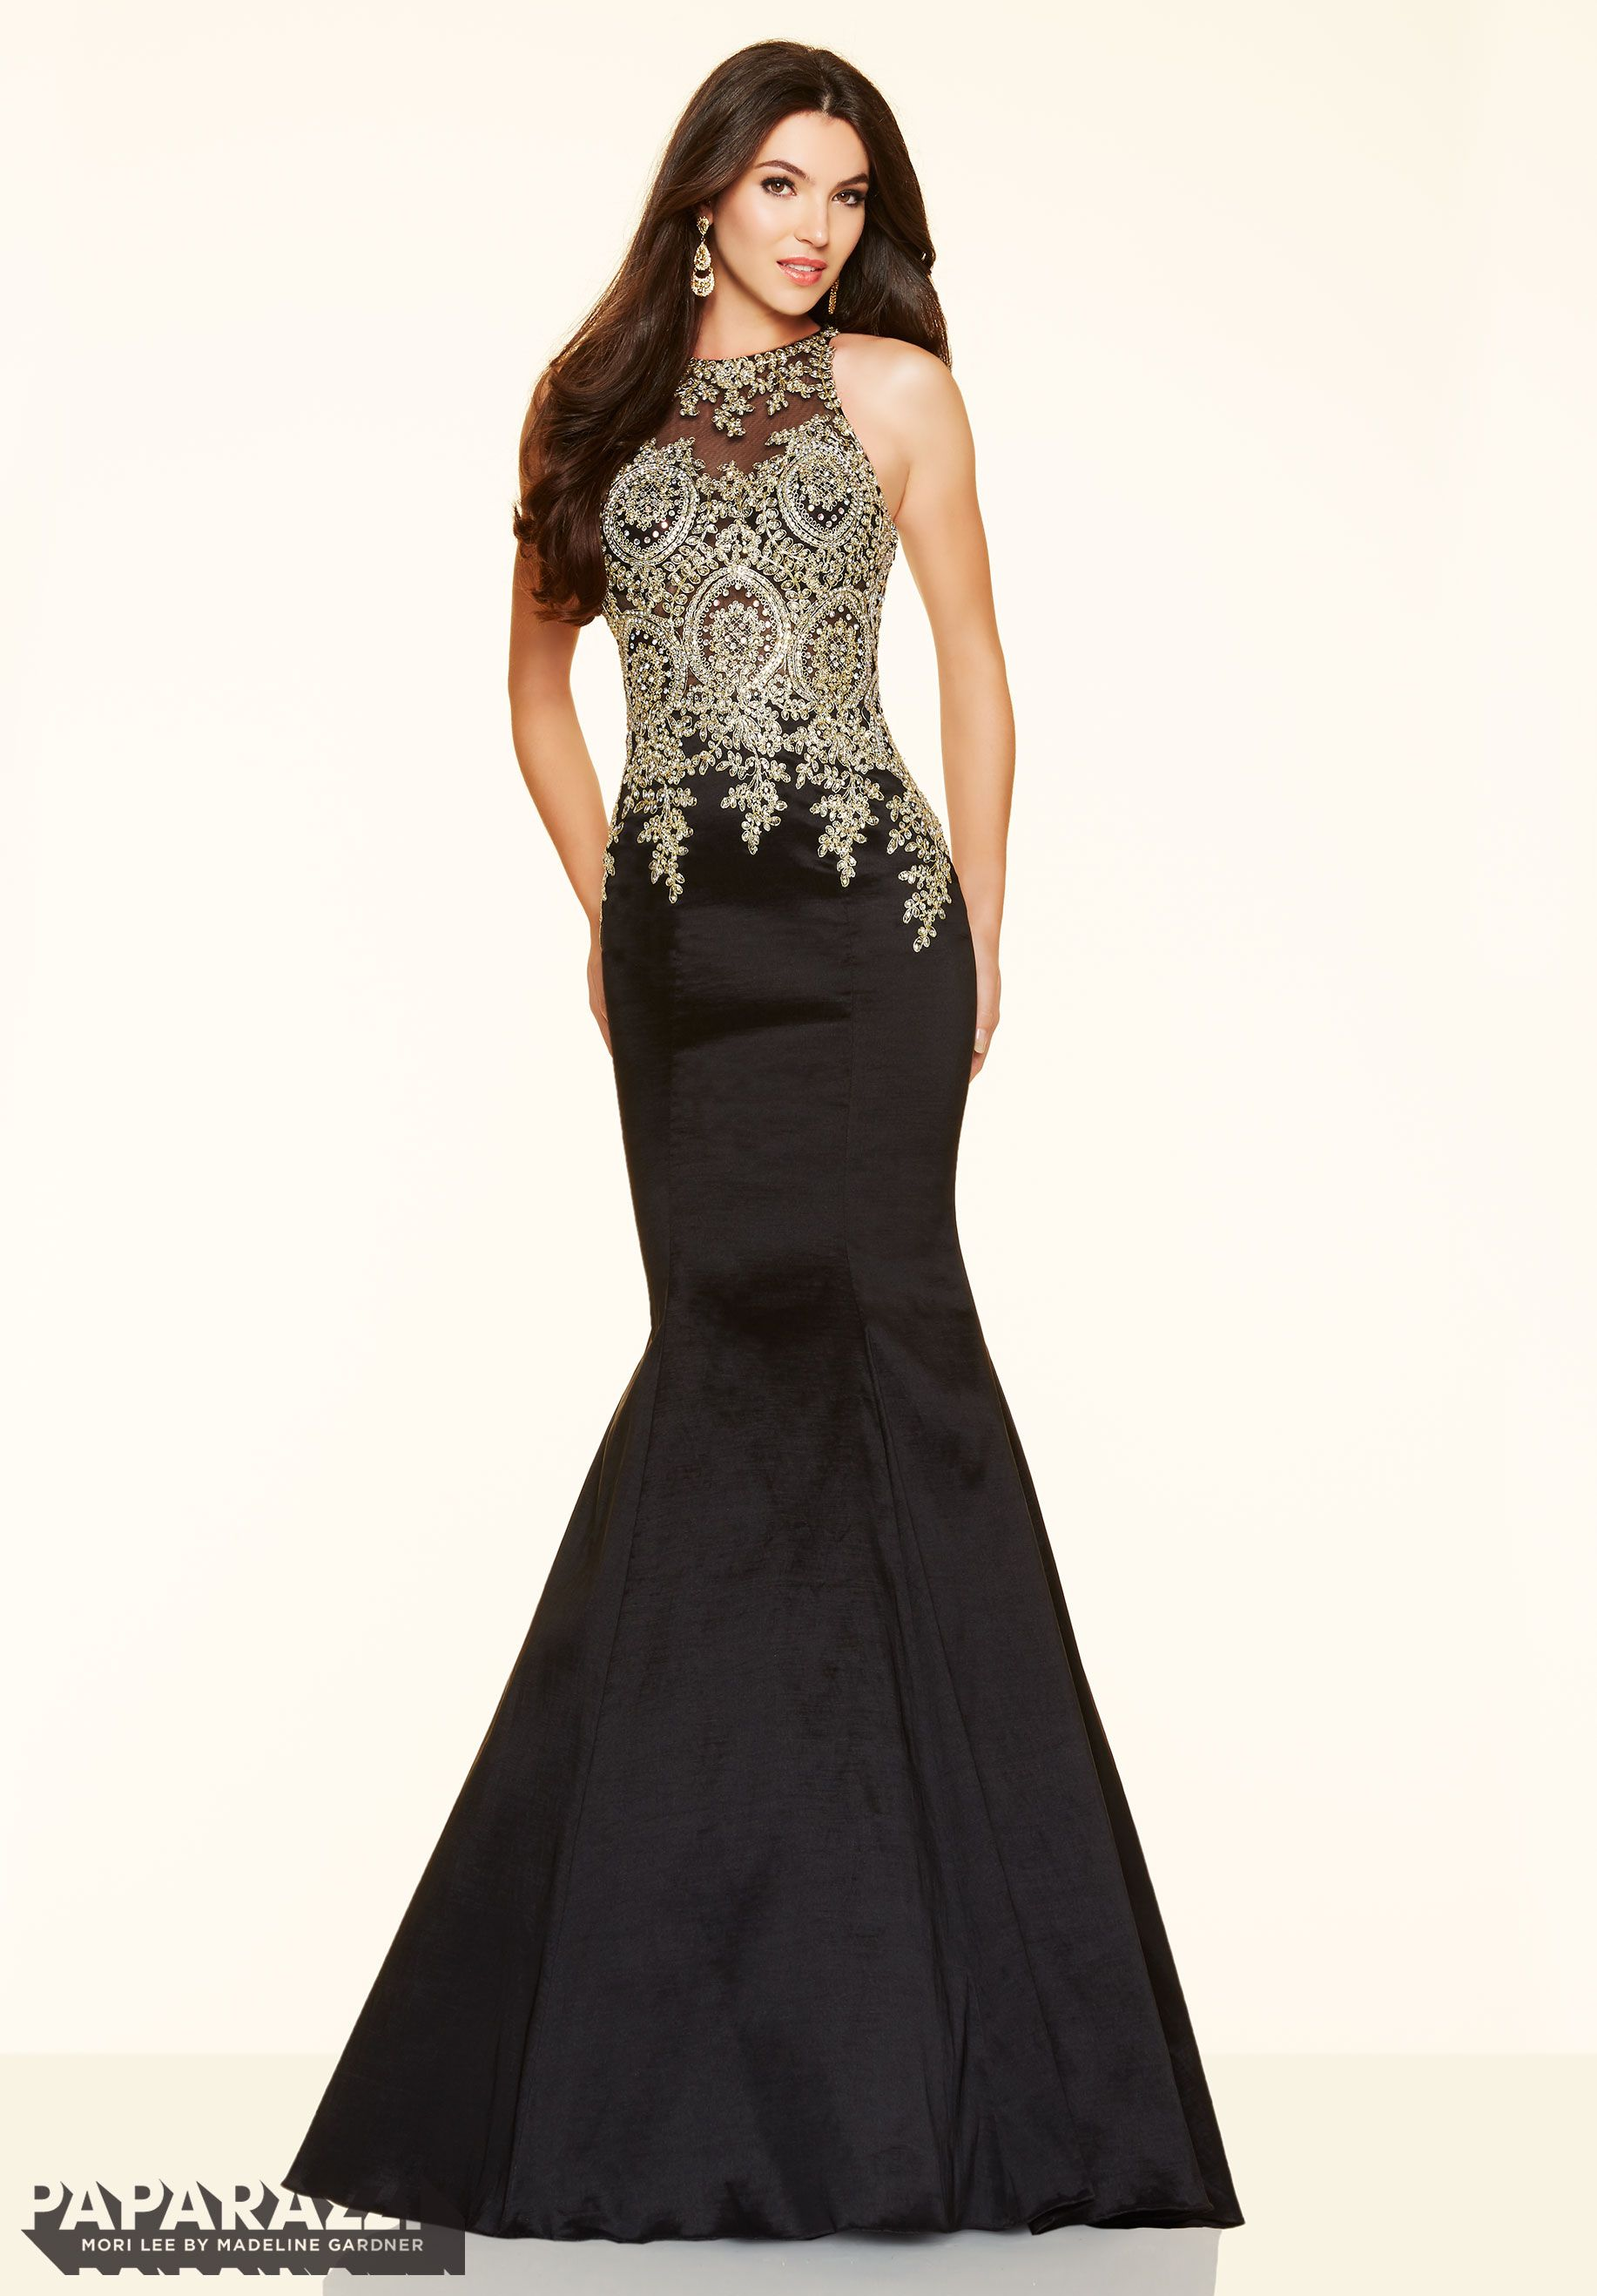 Stretch taffeta prom dress with beaded and embroidered net bodice